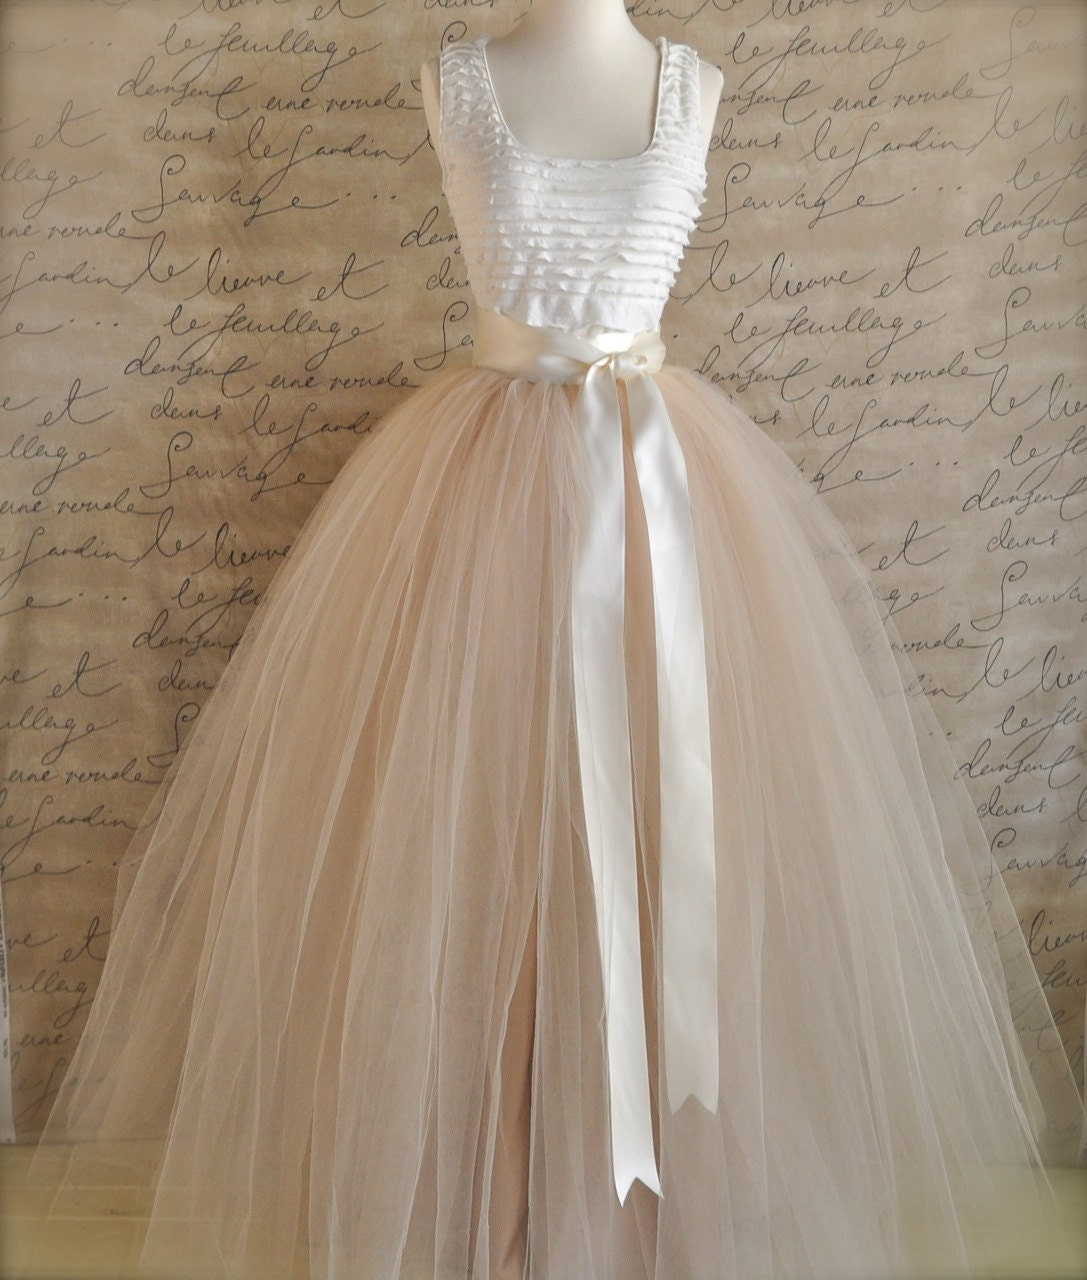 Vintage Wedding Dresses Usa: Full Length Champagne Tulle Skirt. Champagne Tulle Lined In